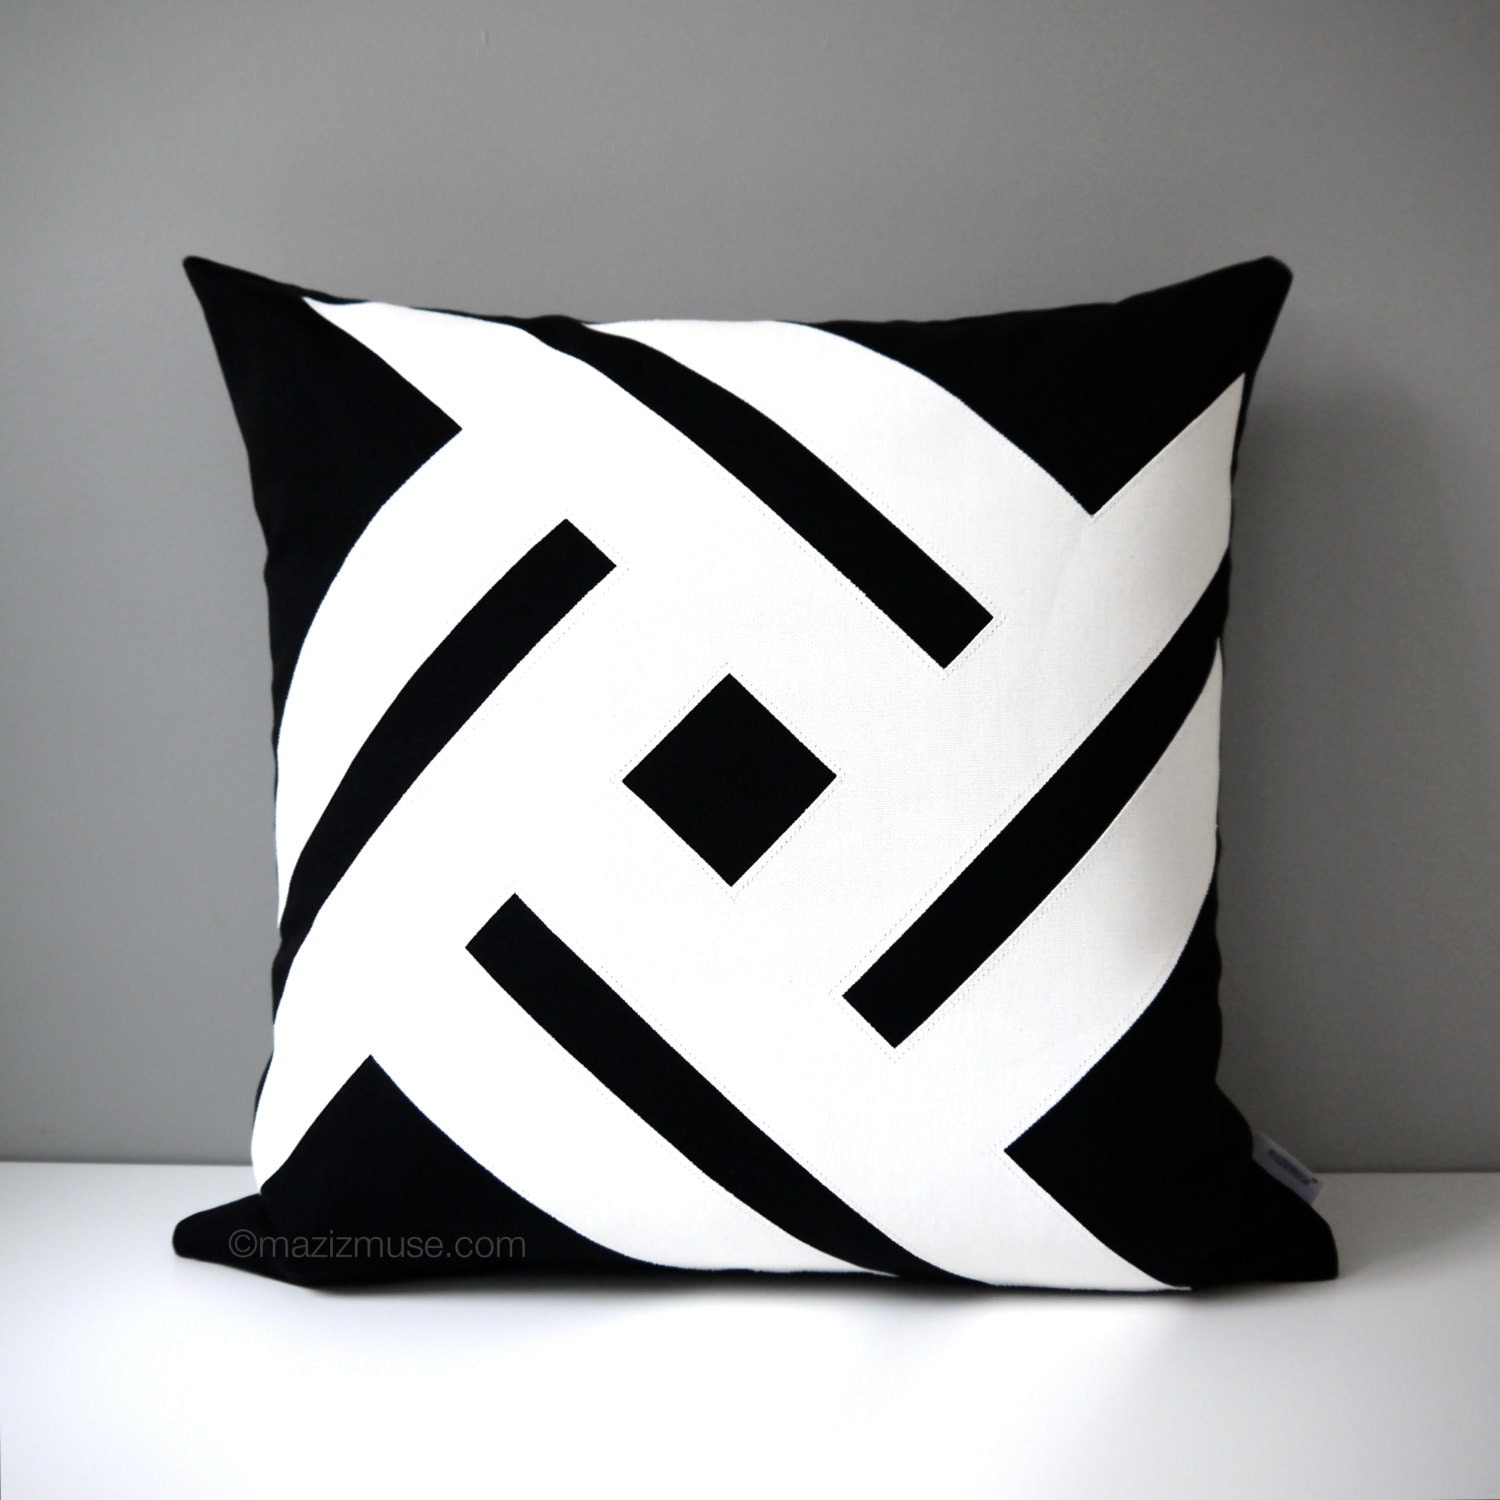 Modern Black & White Outdoor Pillow Cover Decorative Pillow